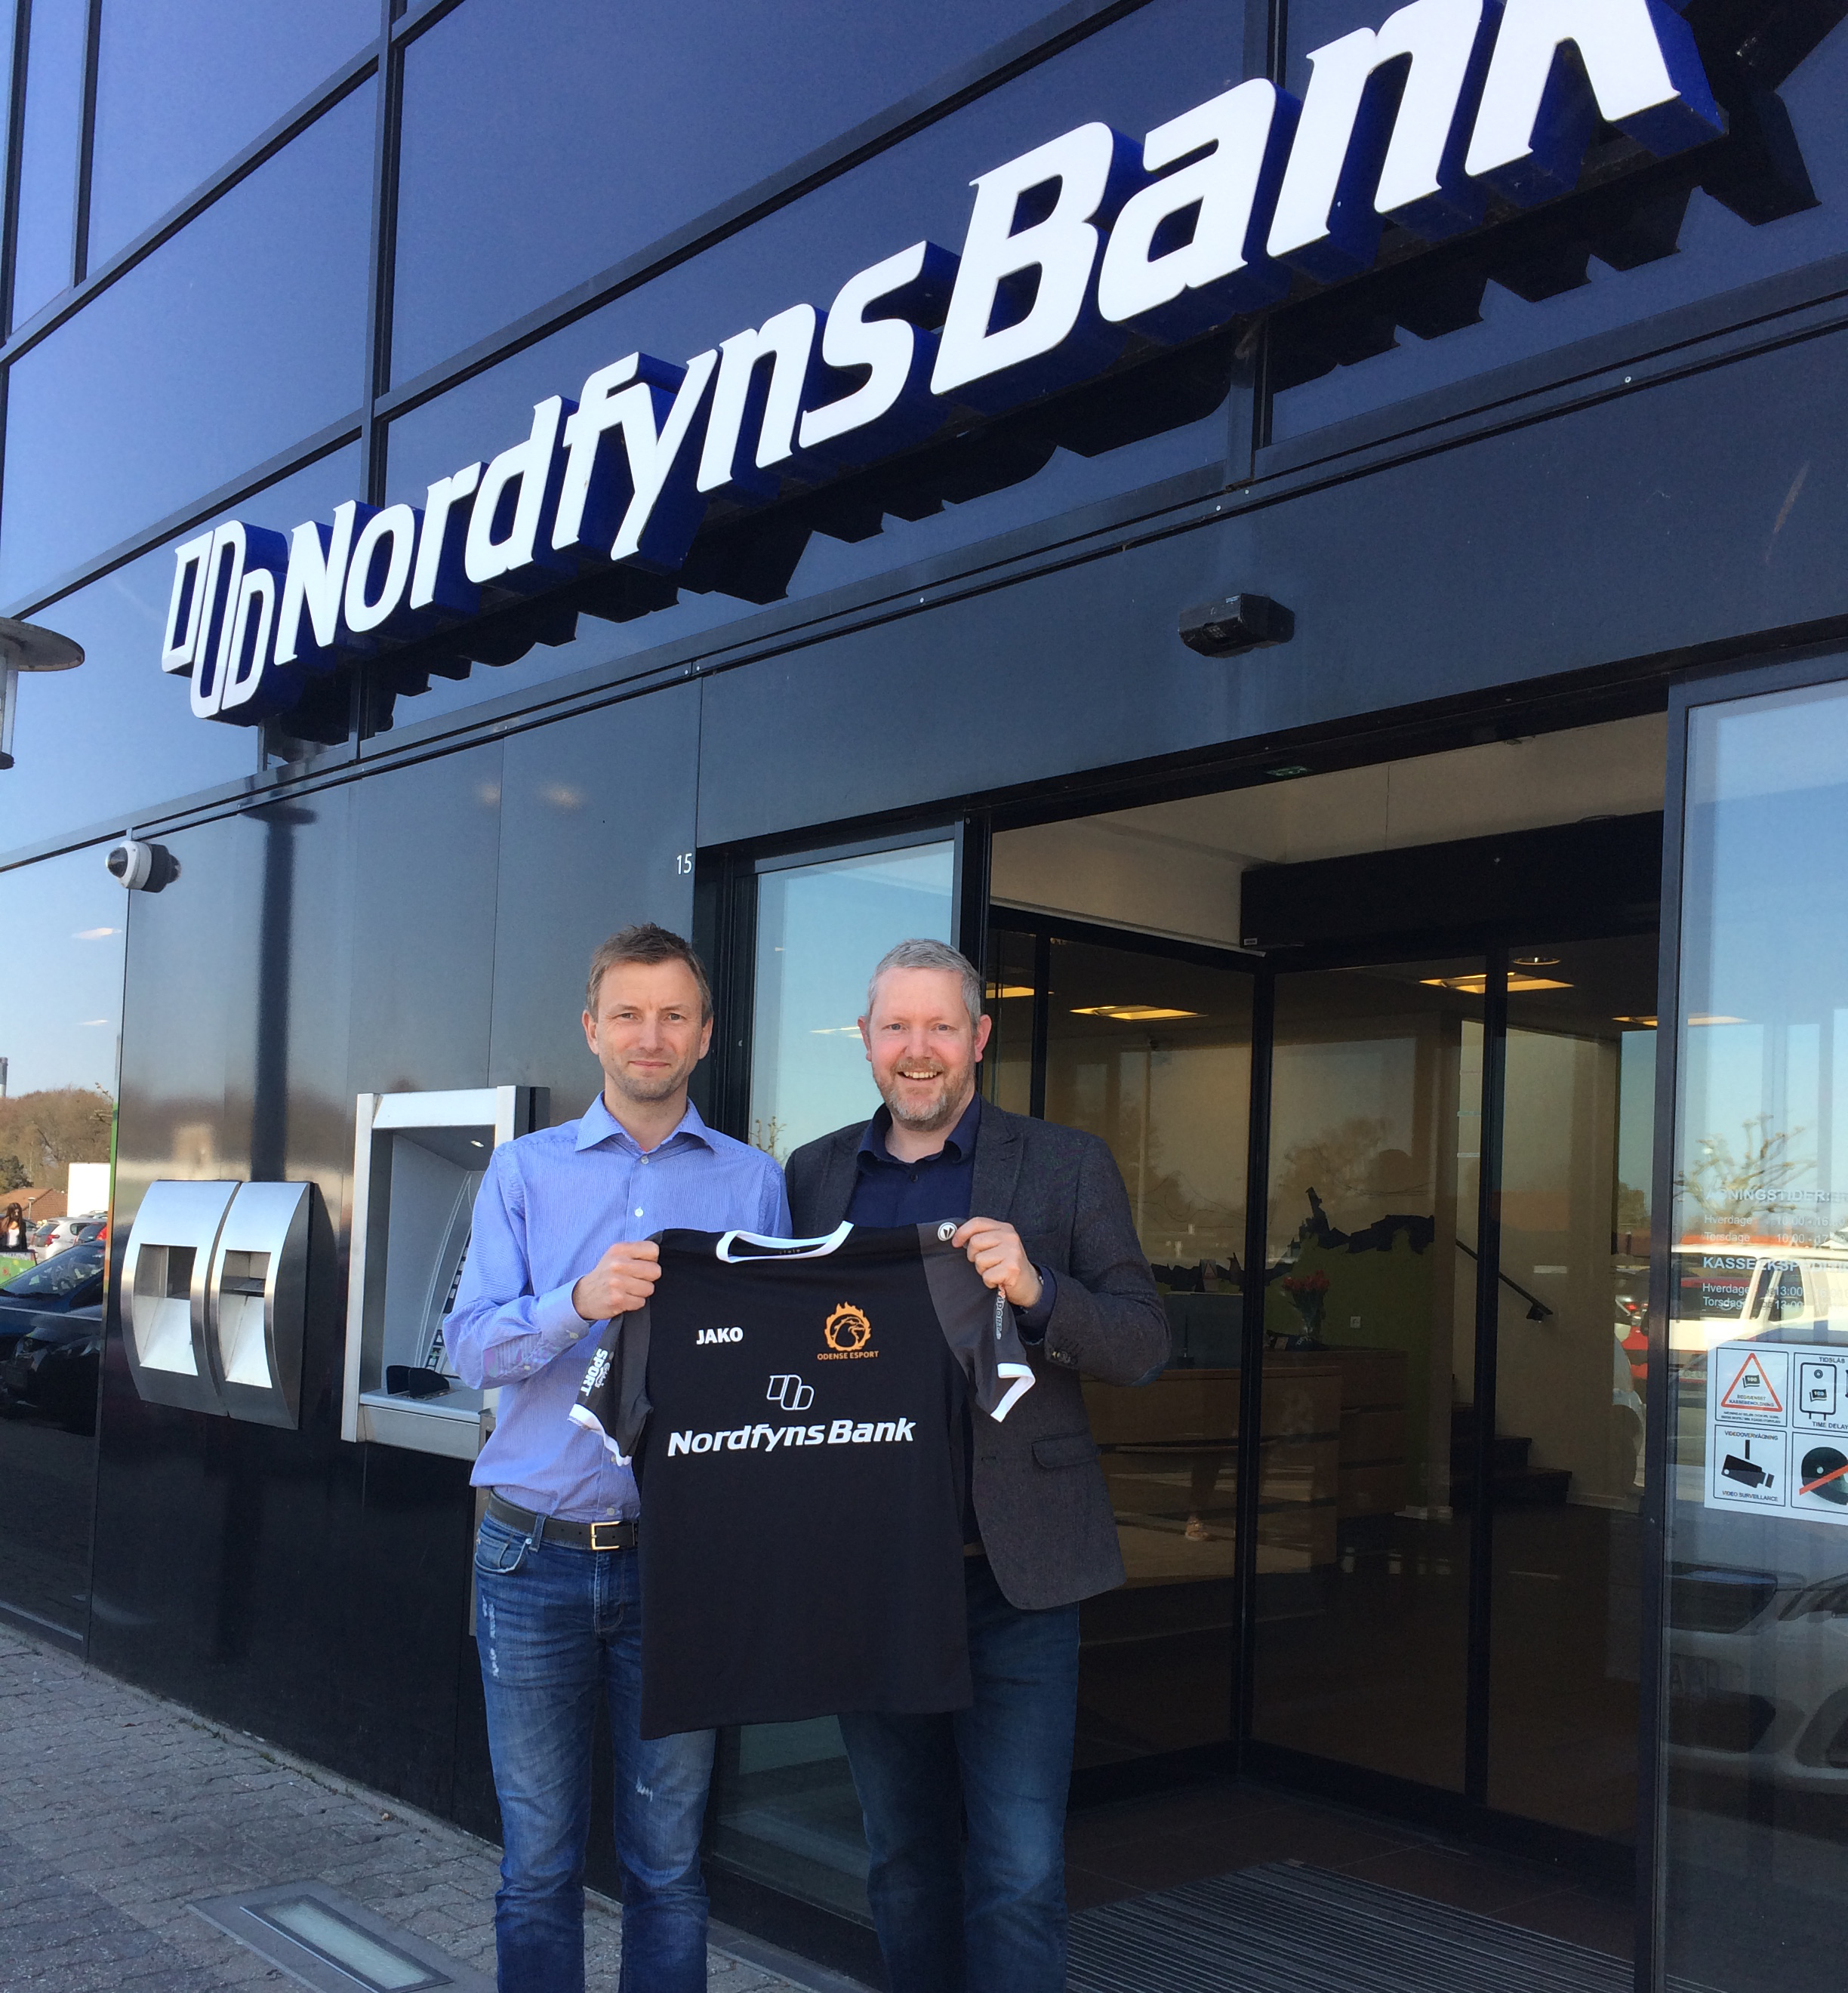 Odense Esport og Nordfyns Bank skaber esport-event i Tarup Center